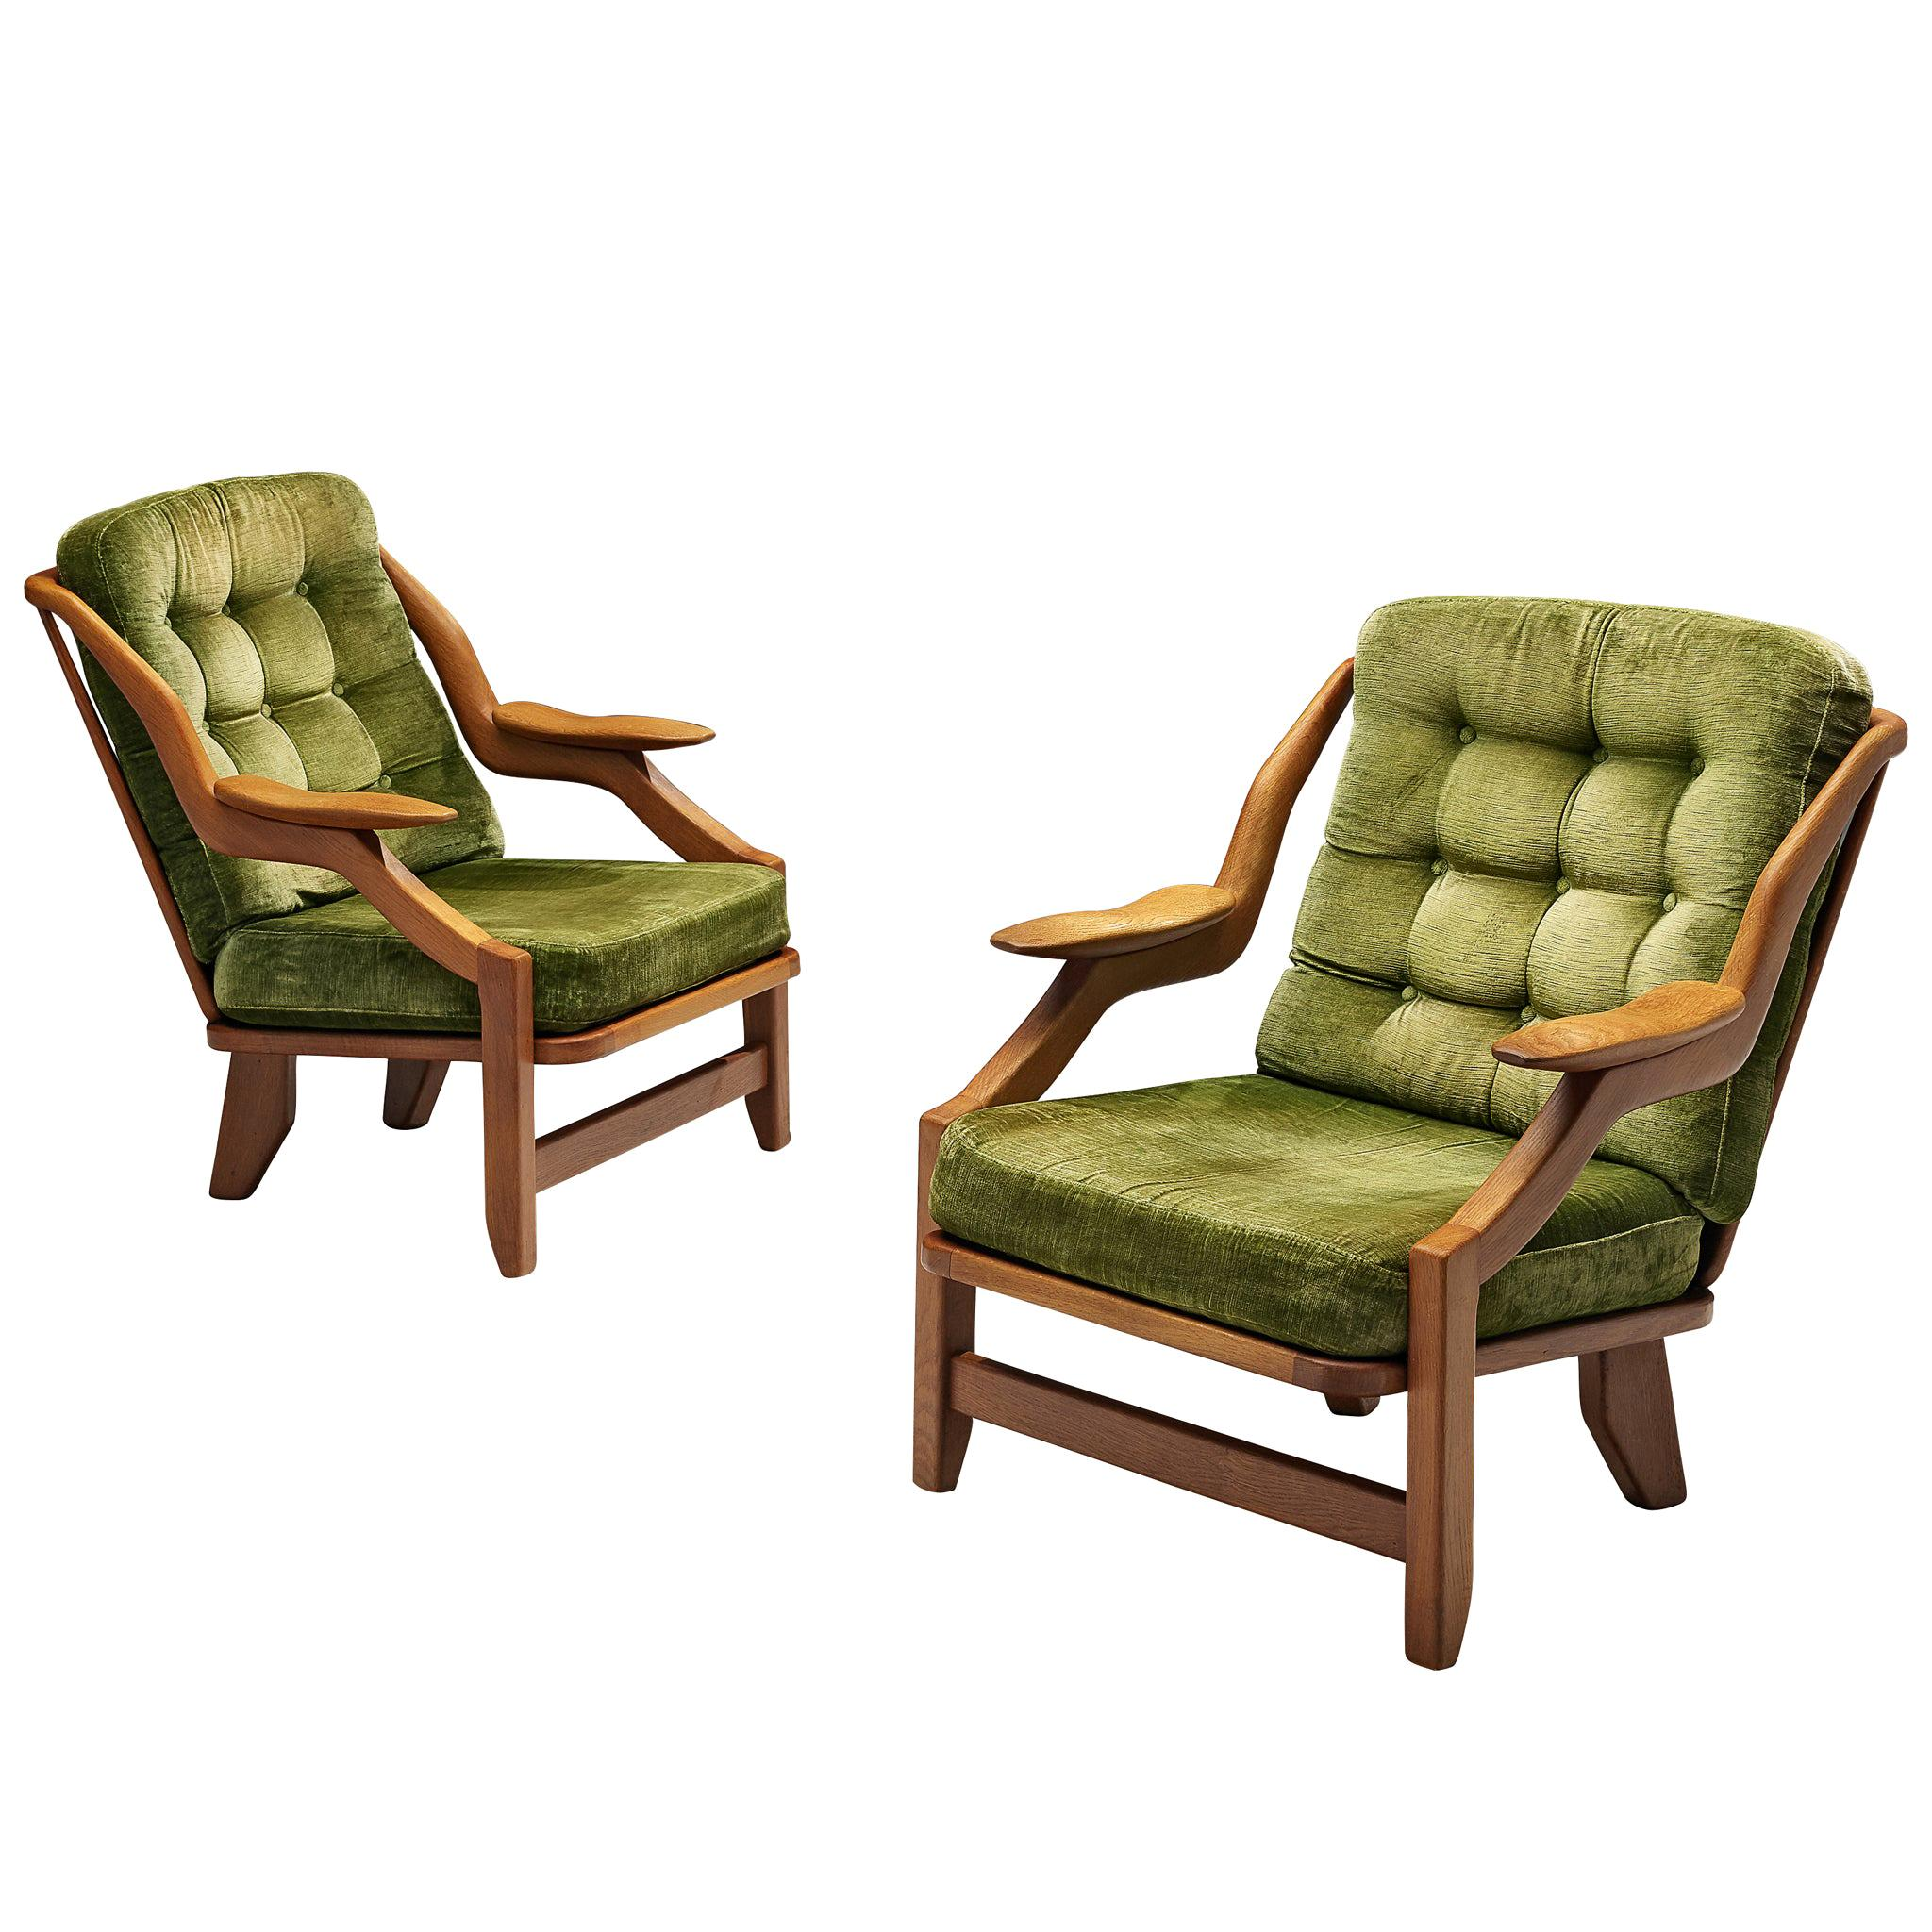 Guillerme and Chambron Set of Lounge Chairs in Green Velvet Upholstery